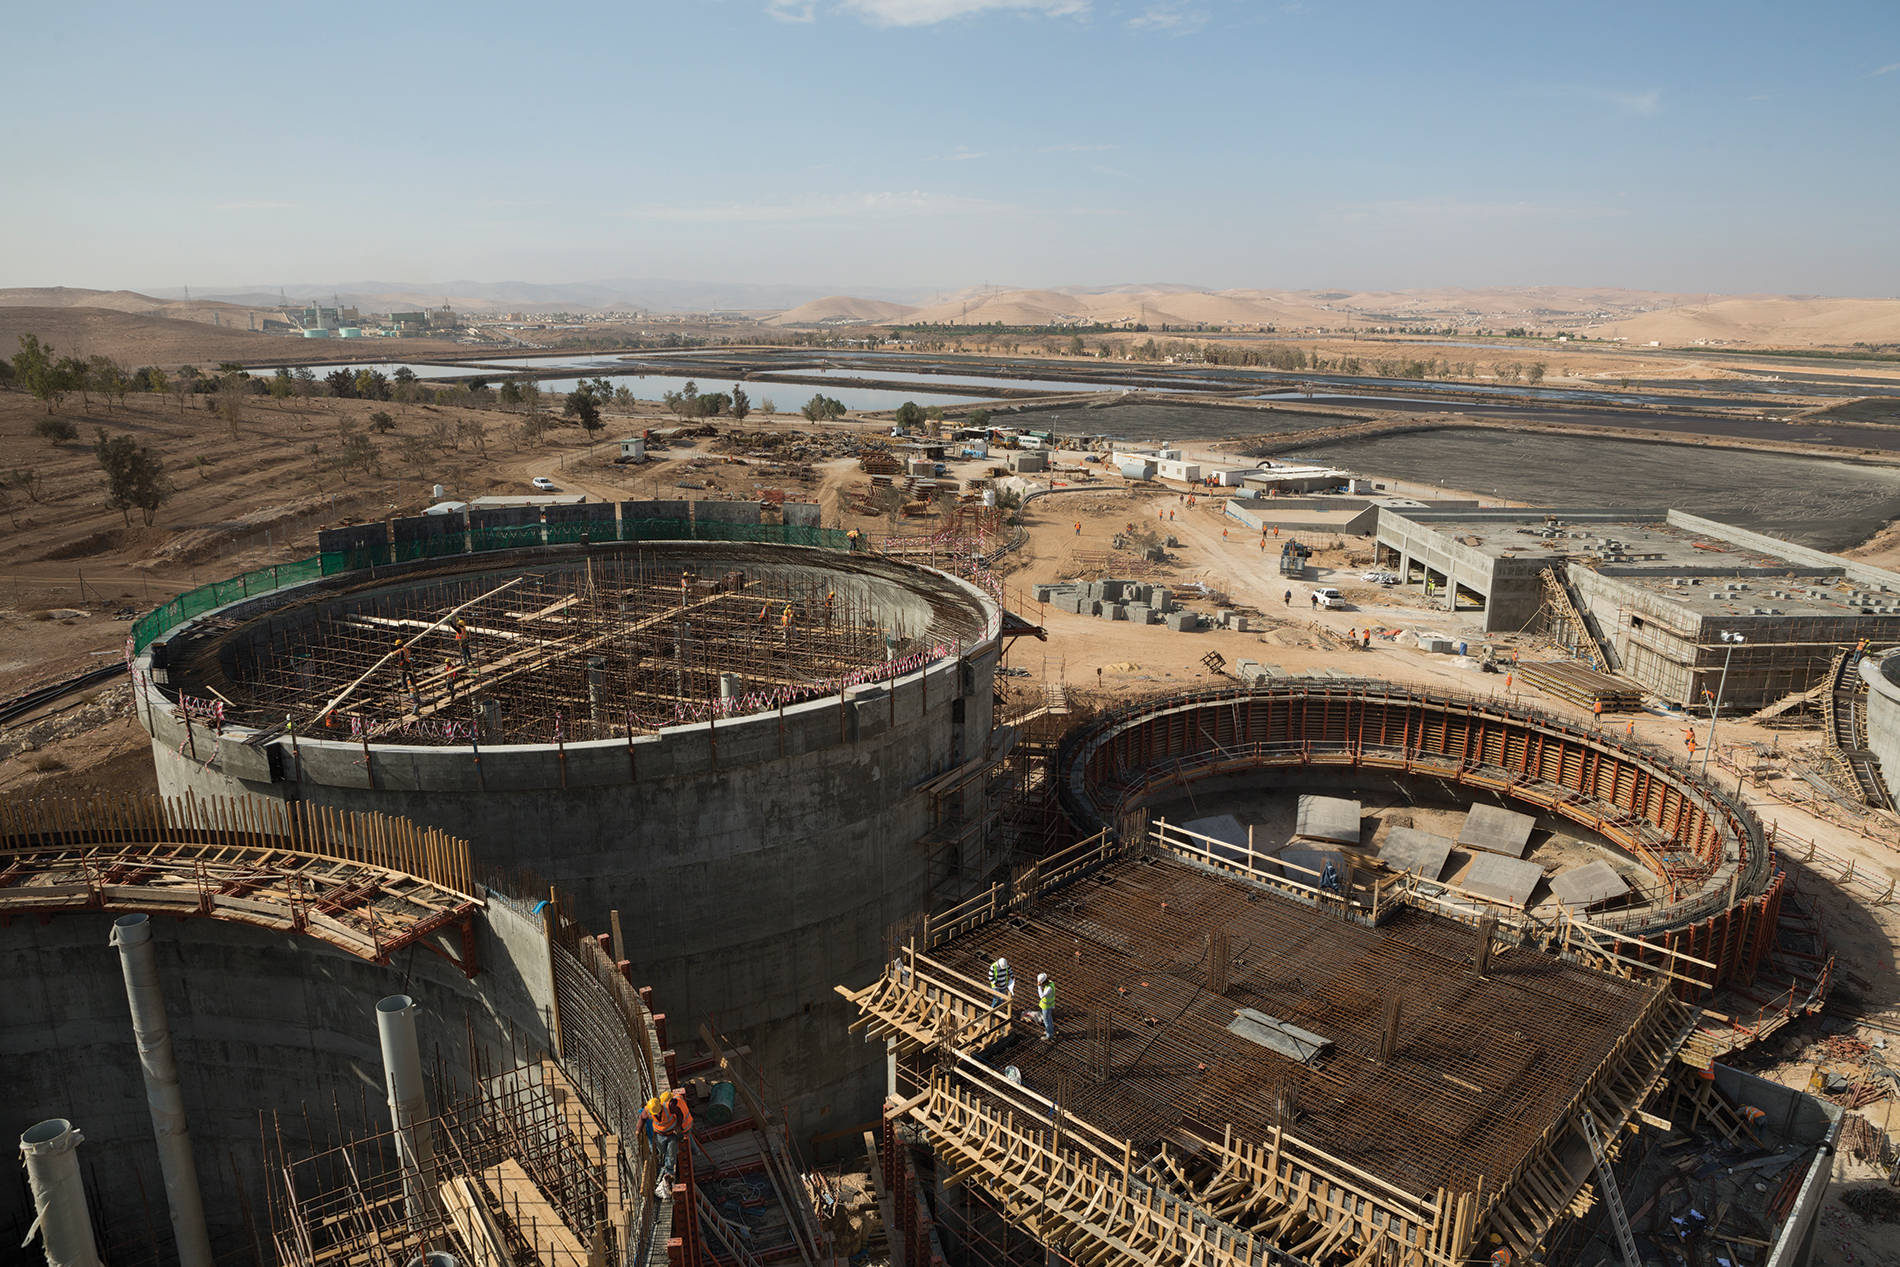 An aerial photograph shows construction of new wastewater digesters at the As Samra Treatment Plant in Zarqa, Jordan. MCC is supporting the expansion of the existing plant through a public-private partnership to increase its capacity to handle sewage and produce much needed treated water for drinking and irrigation.